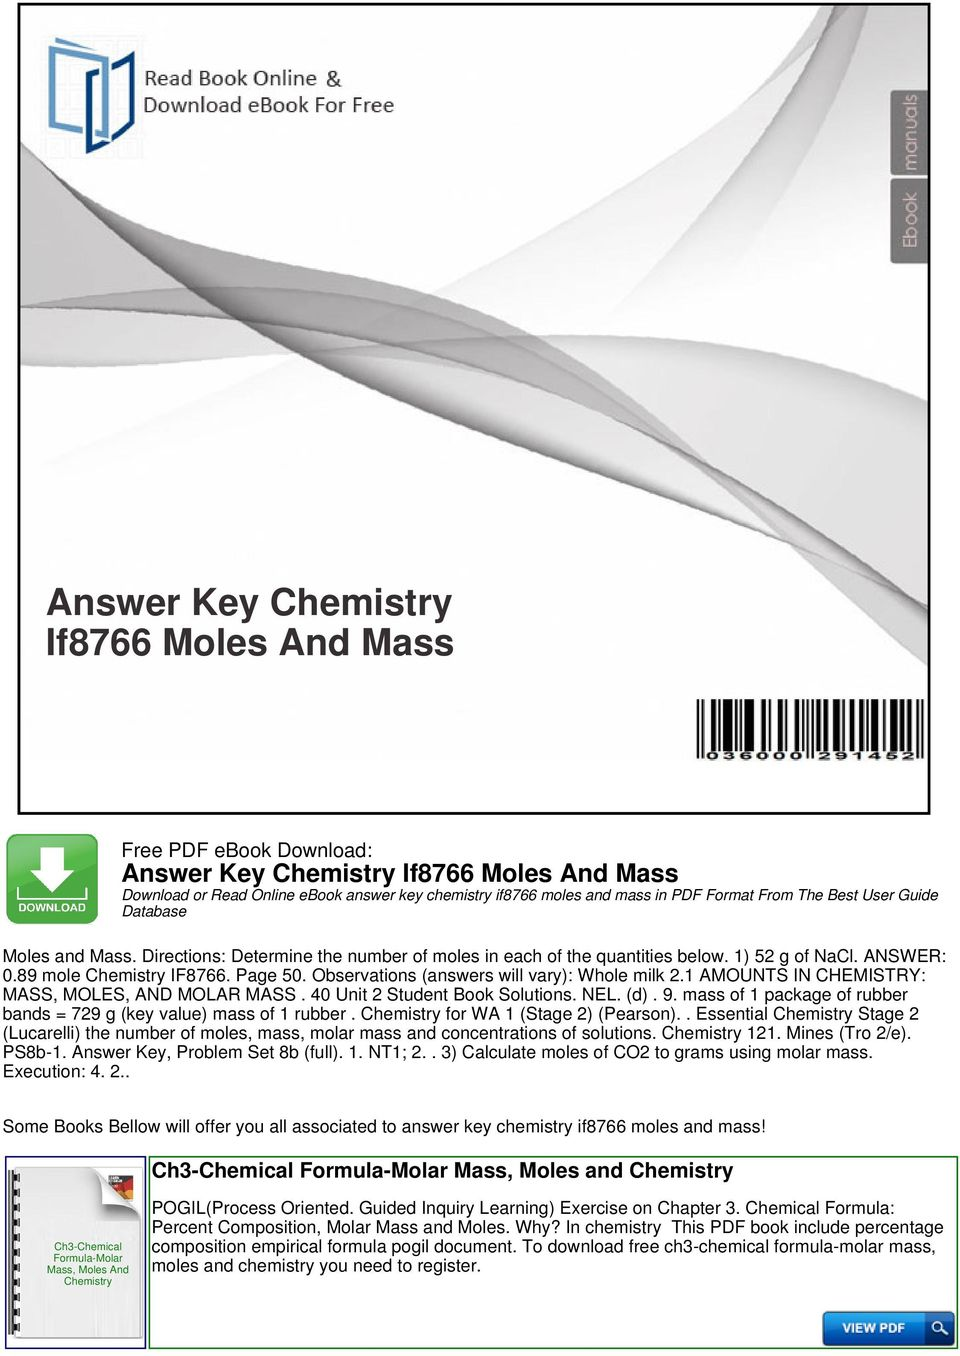 Answer Key Chemistry If8766 Moles And Mass - PDF